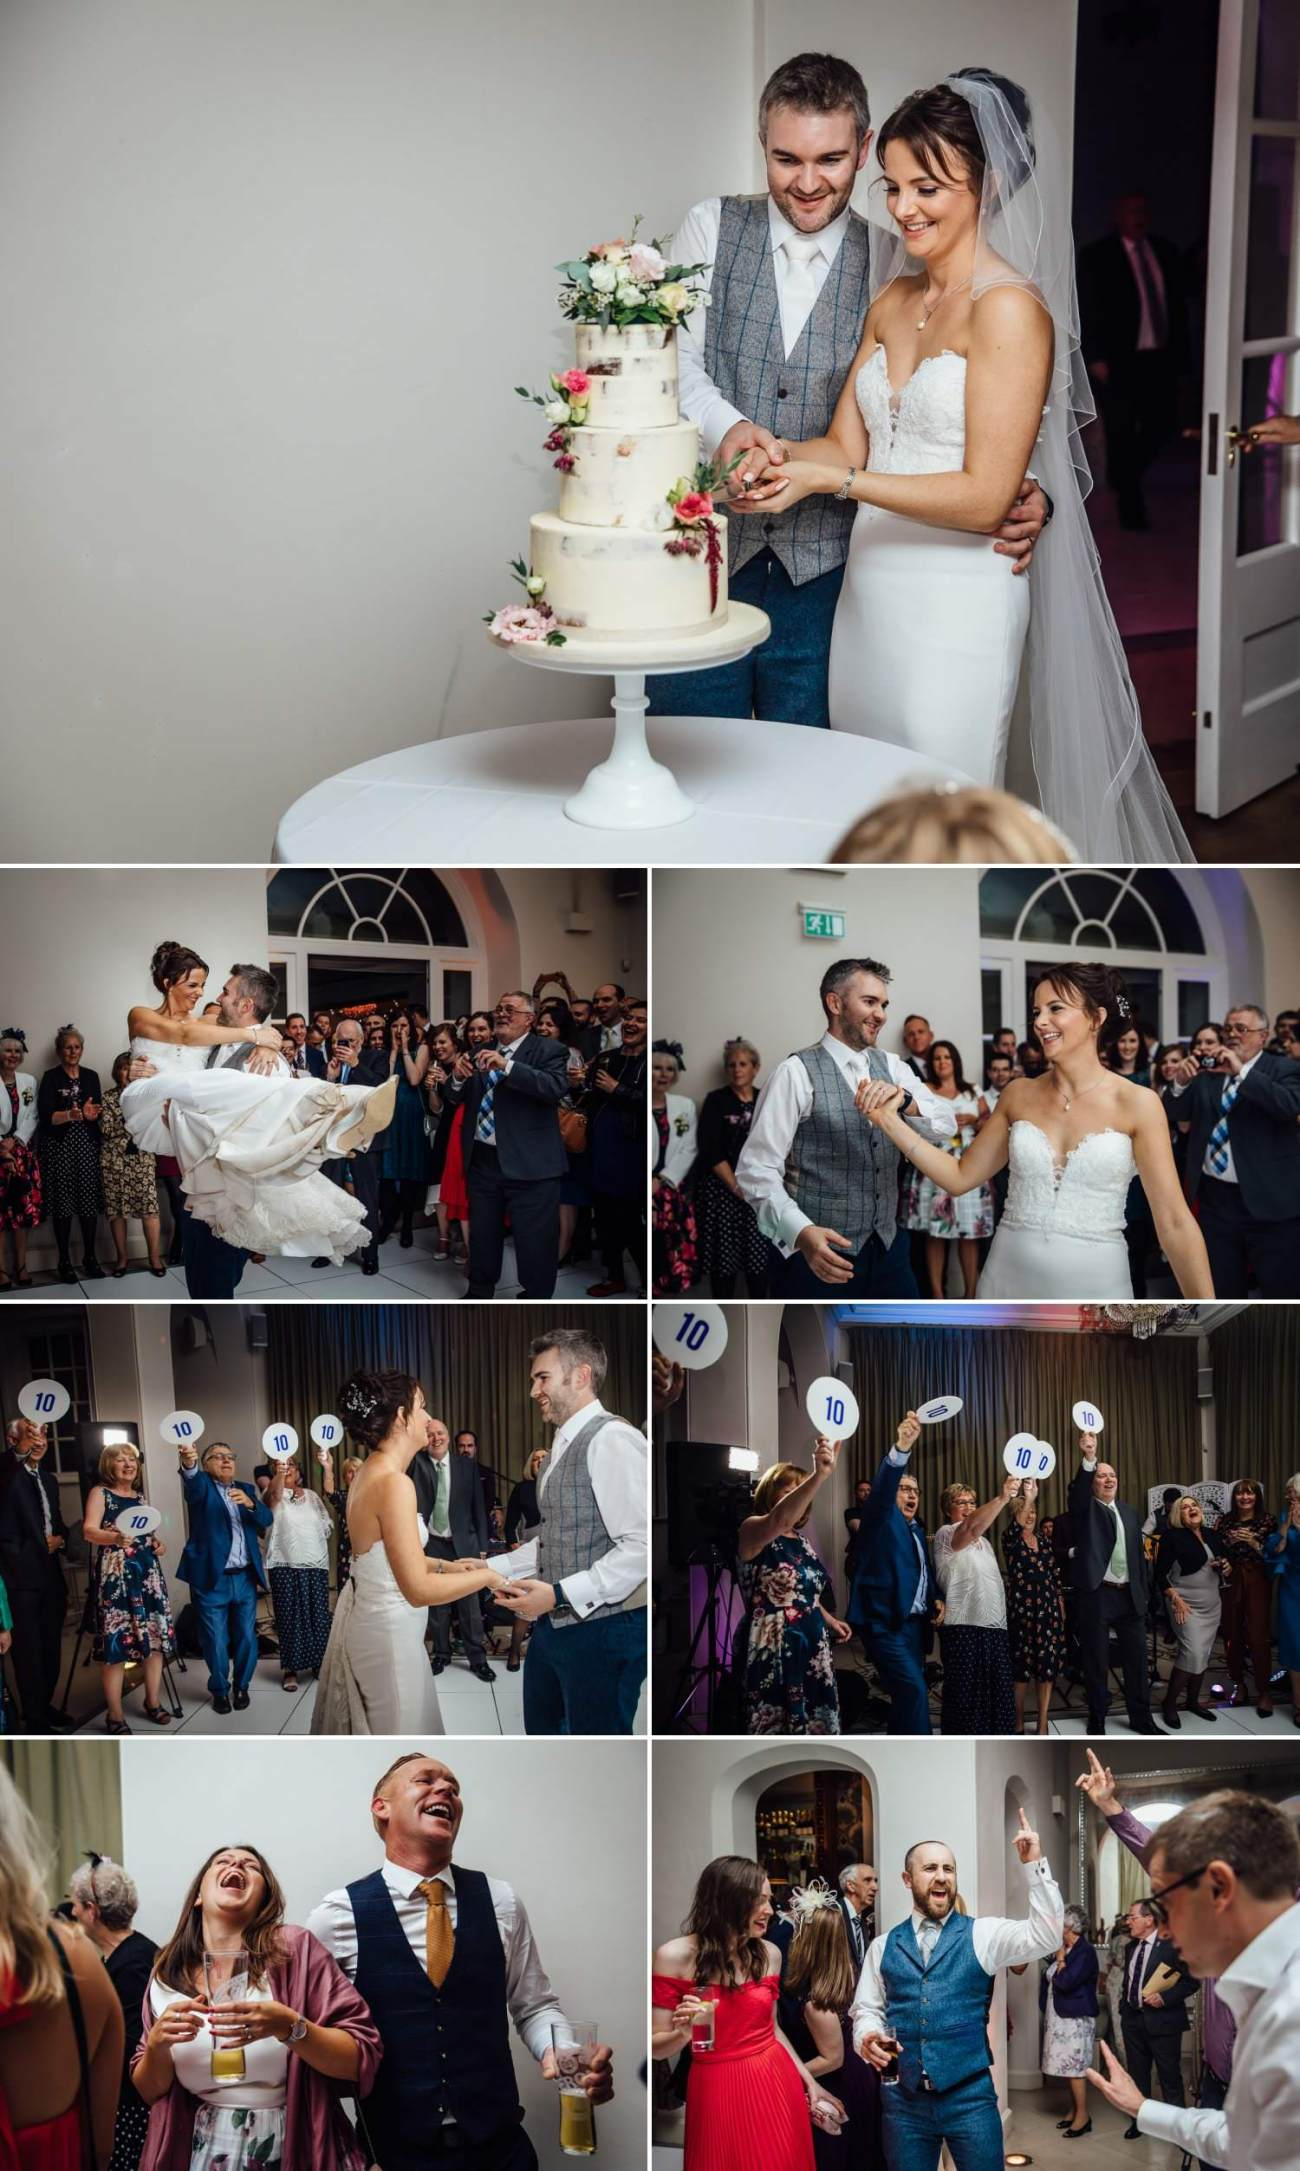 First wedding dance and cutting of the cake at Iscoyd Park